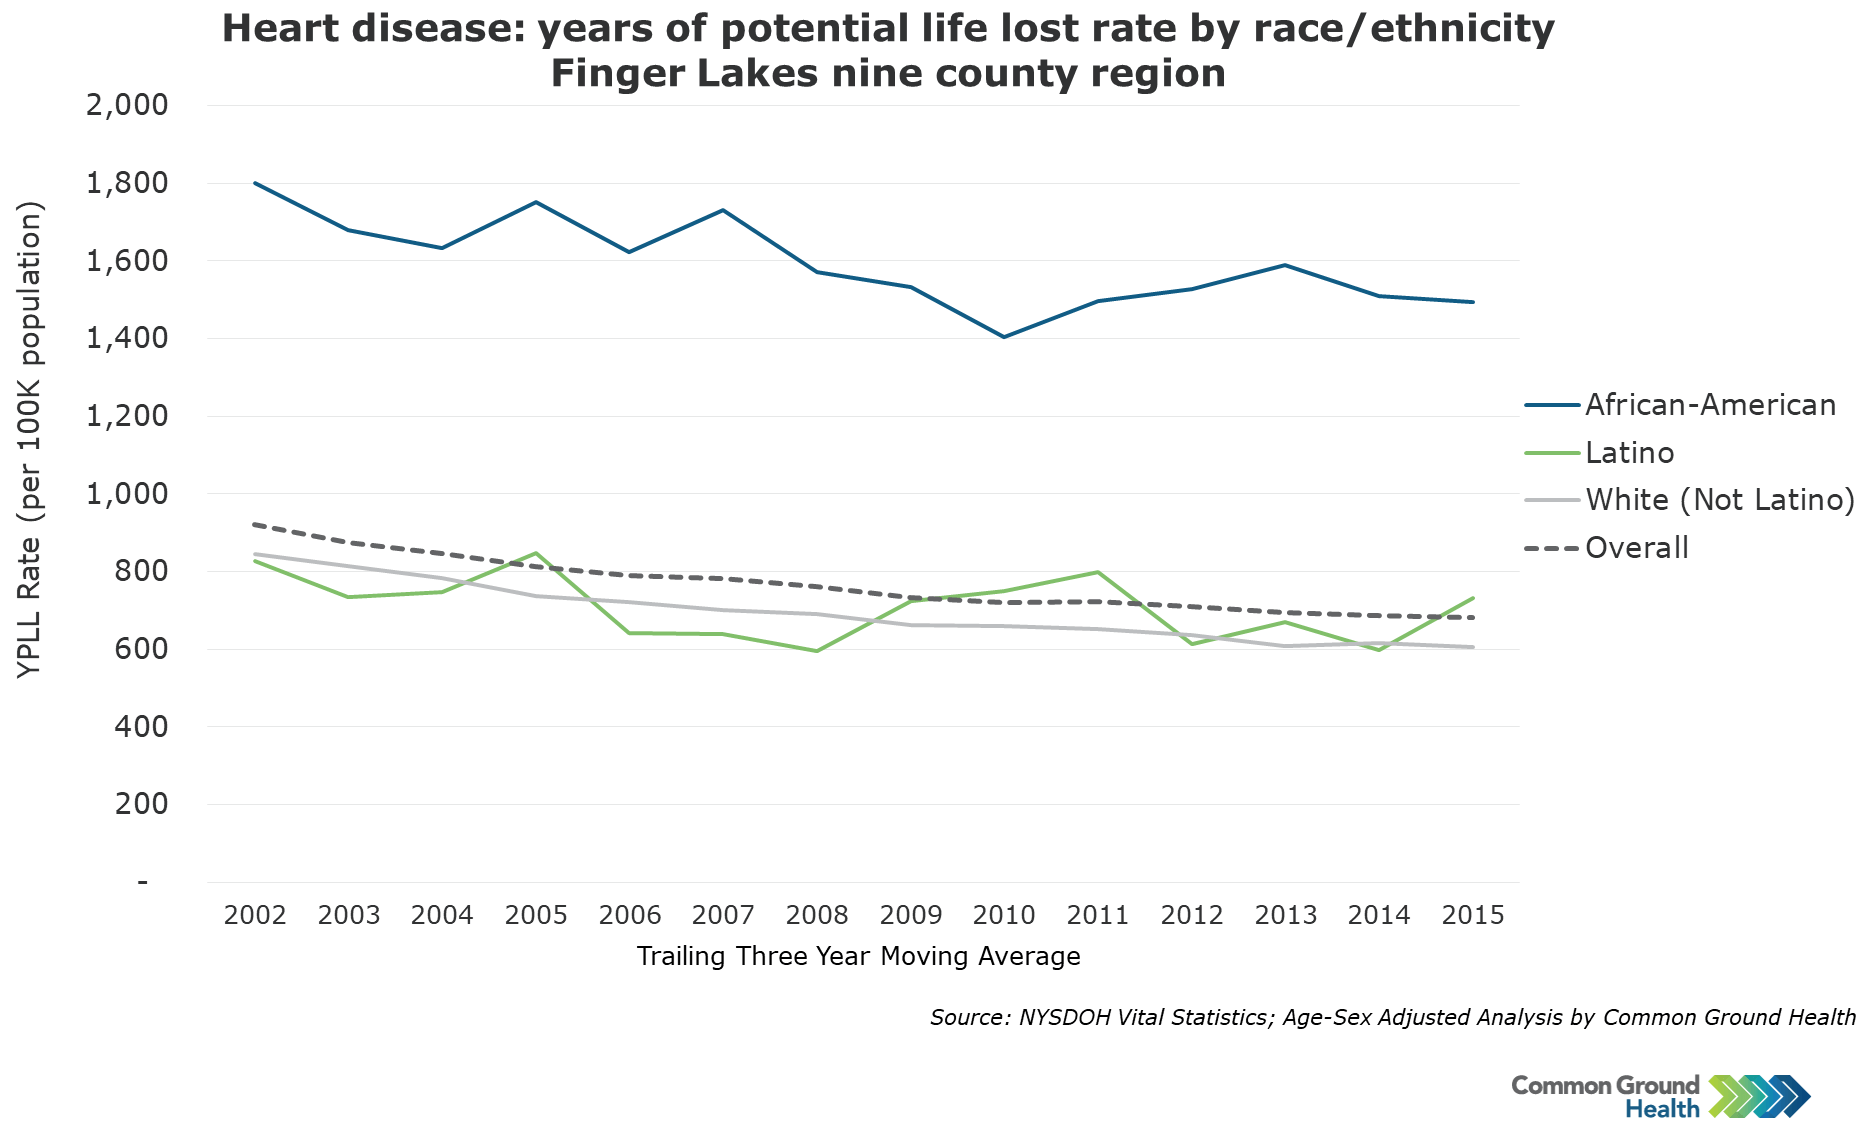 Heart Disease: Years of Potential Life Lost Rate by Race/Ethnicity